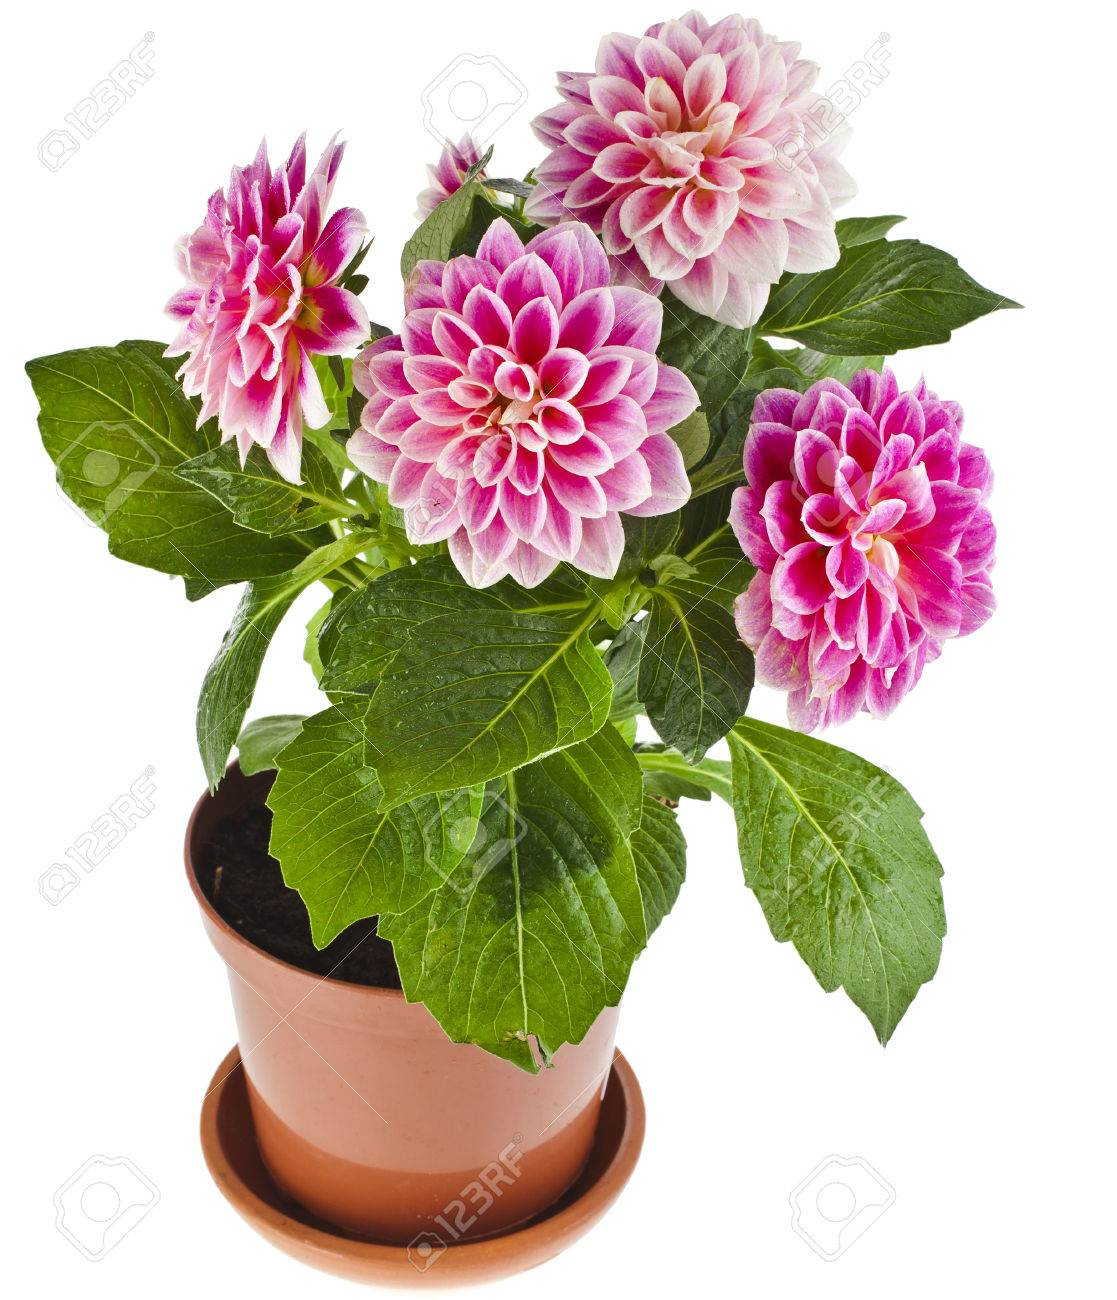 Colored Dahlia Flowers Plant In A Pot Isolated On White Background Stock Photo Picture And Royalty Free Image Image 33319024